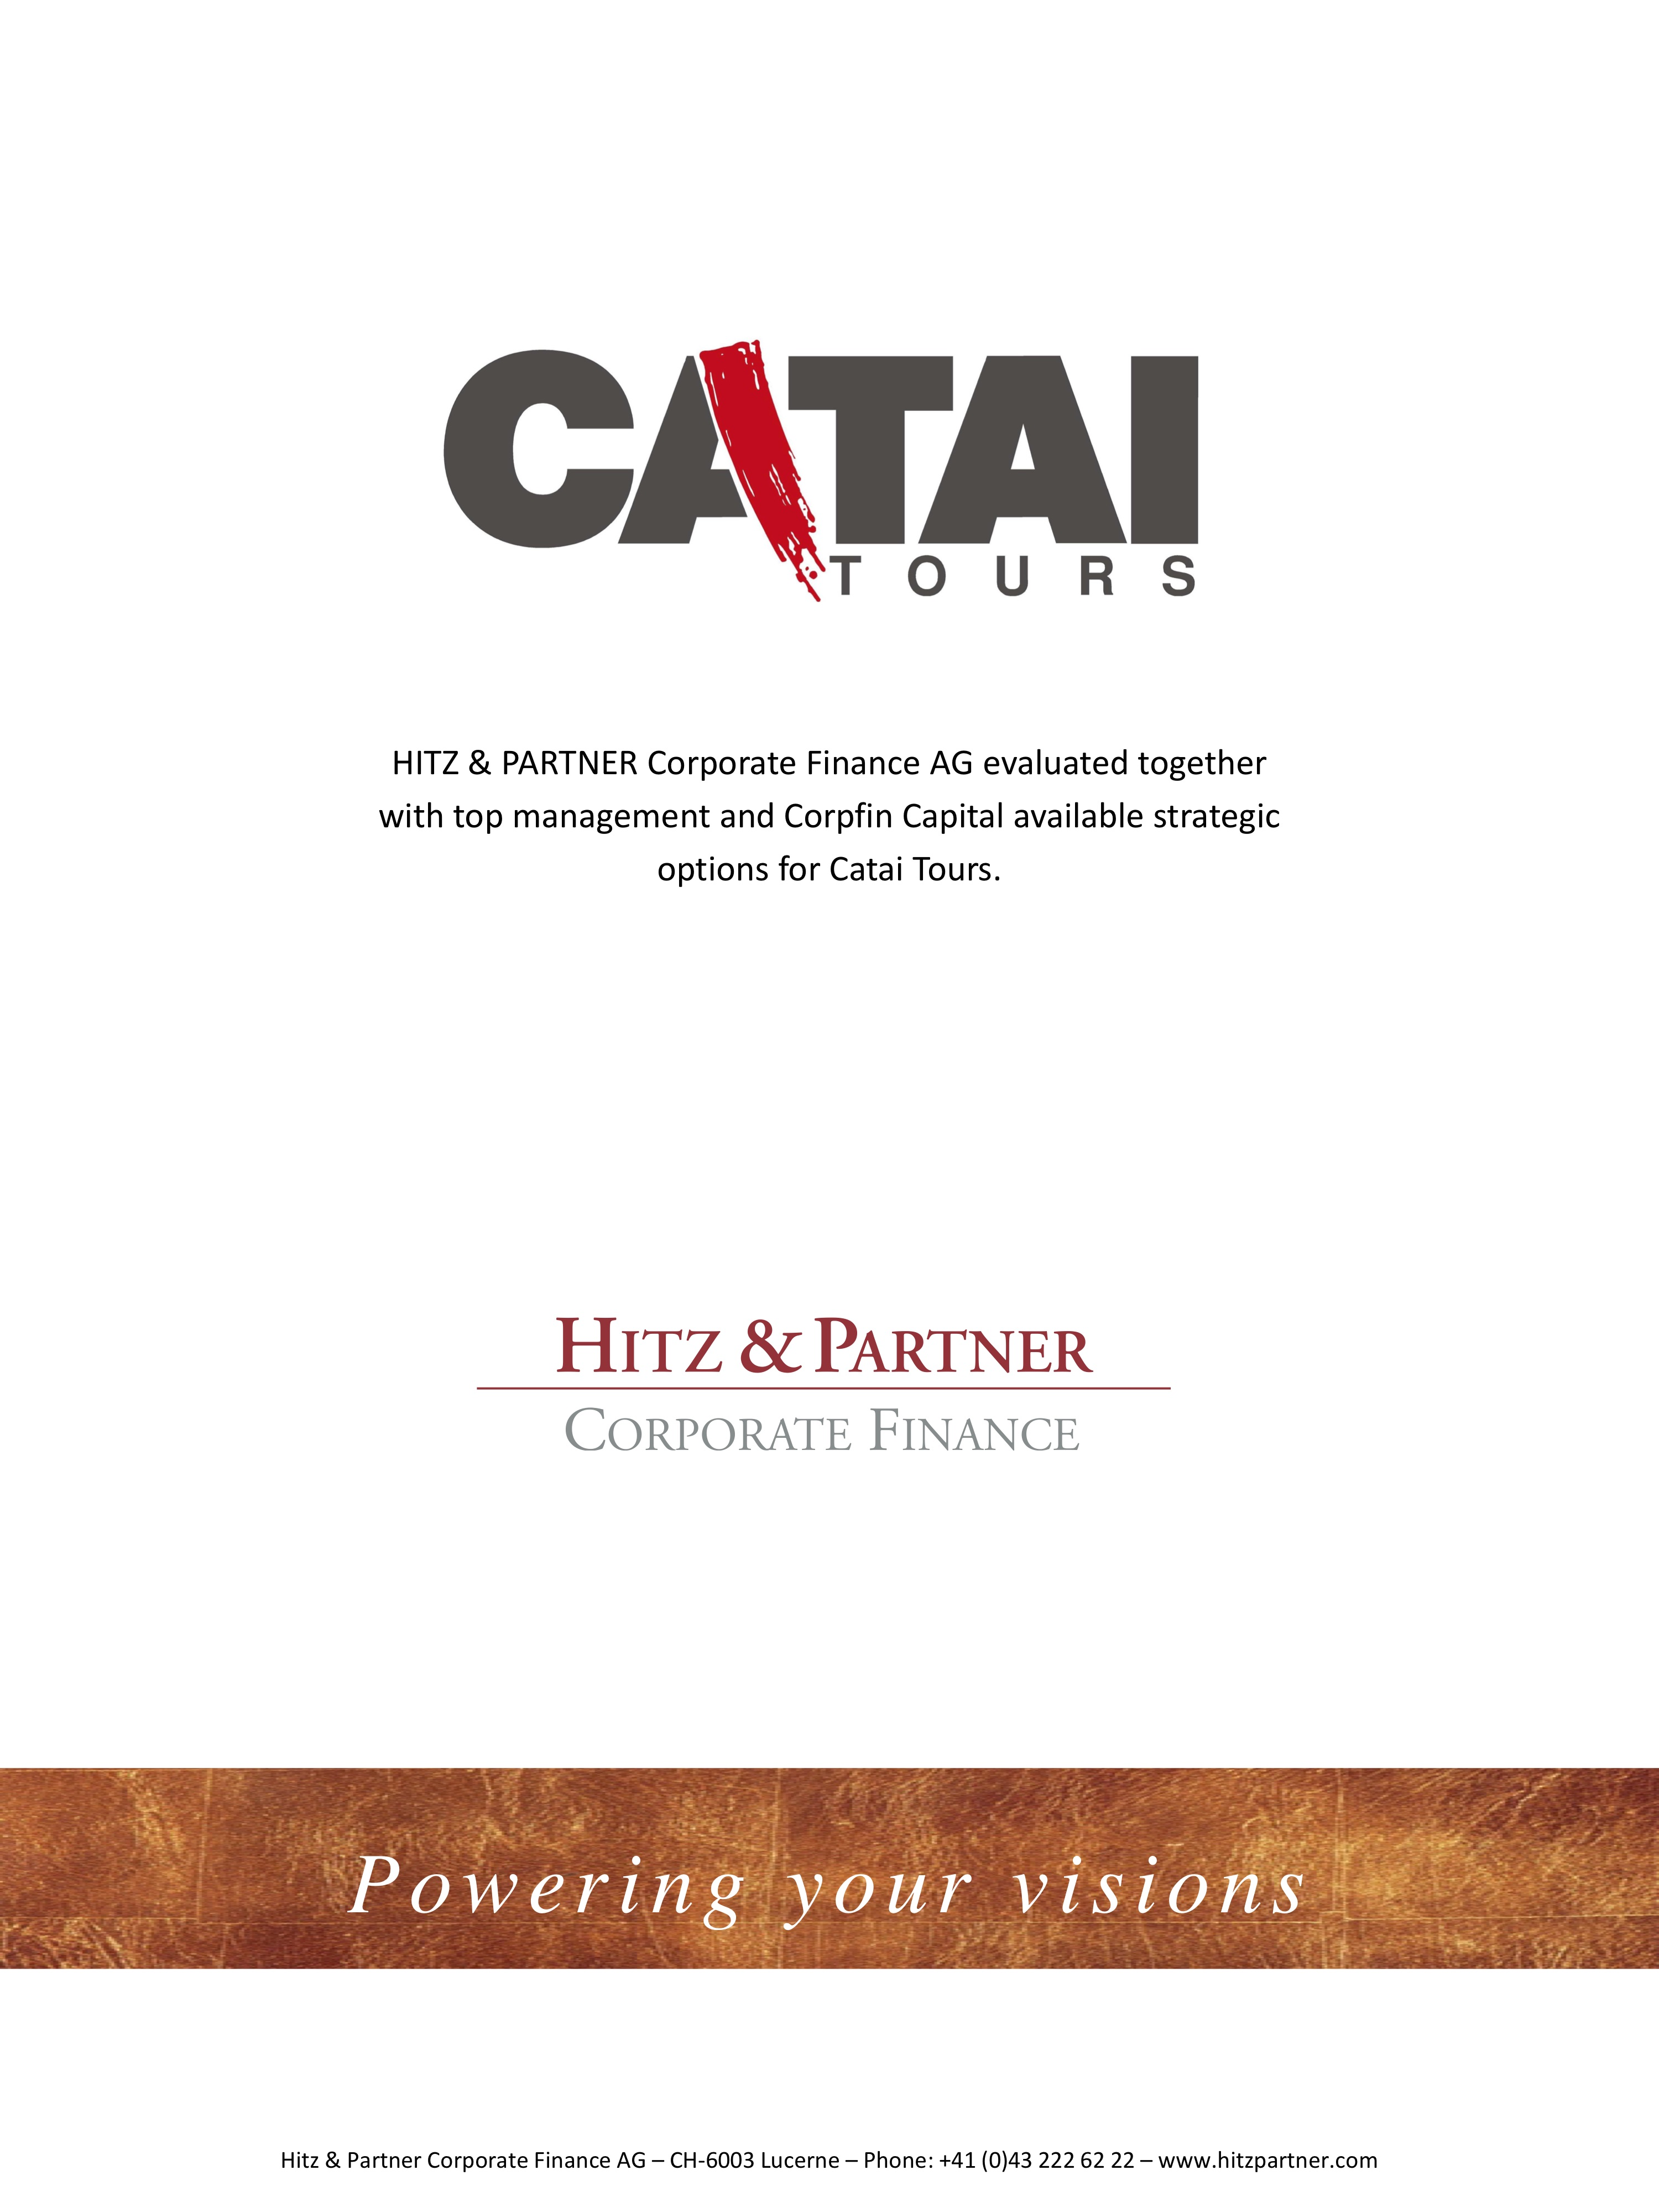 Advisory services for Catai Tours